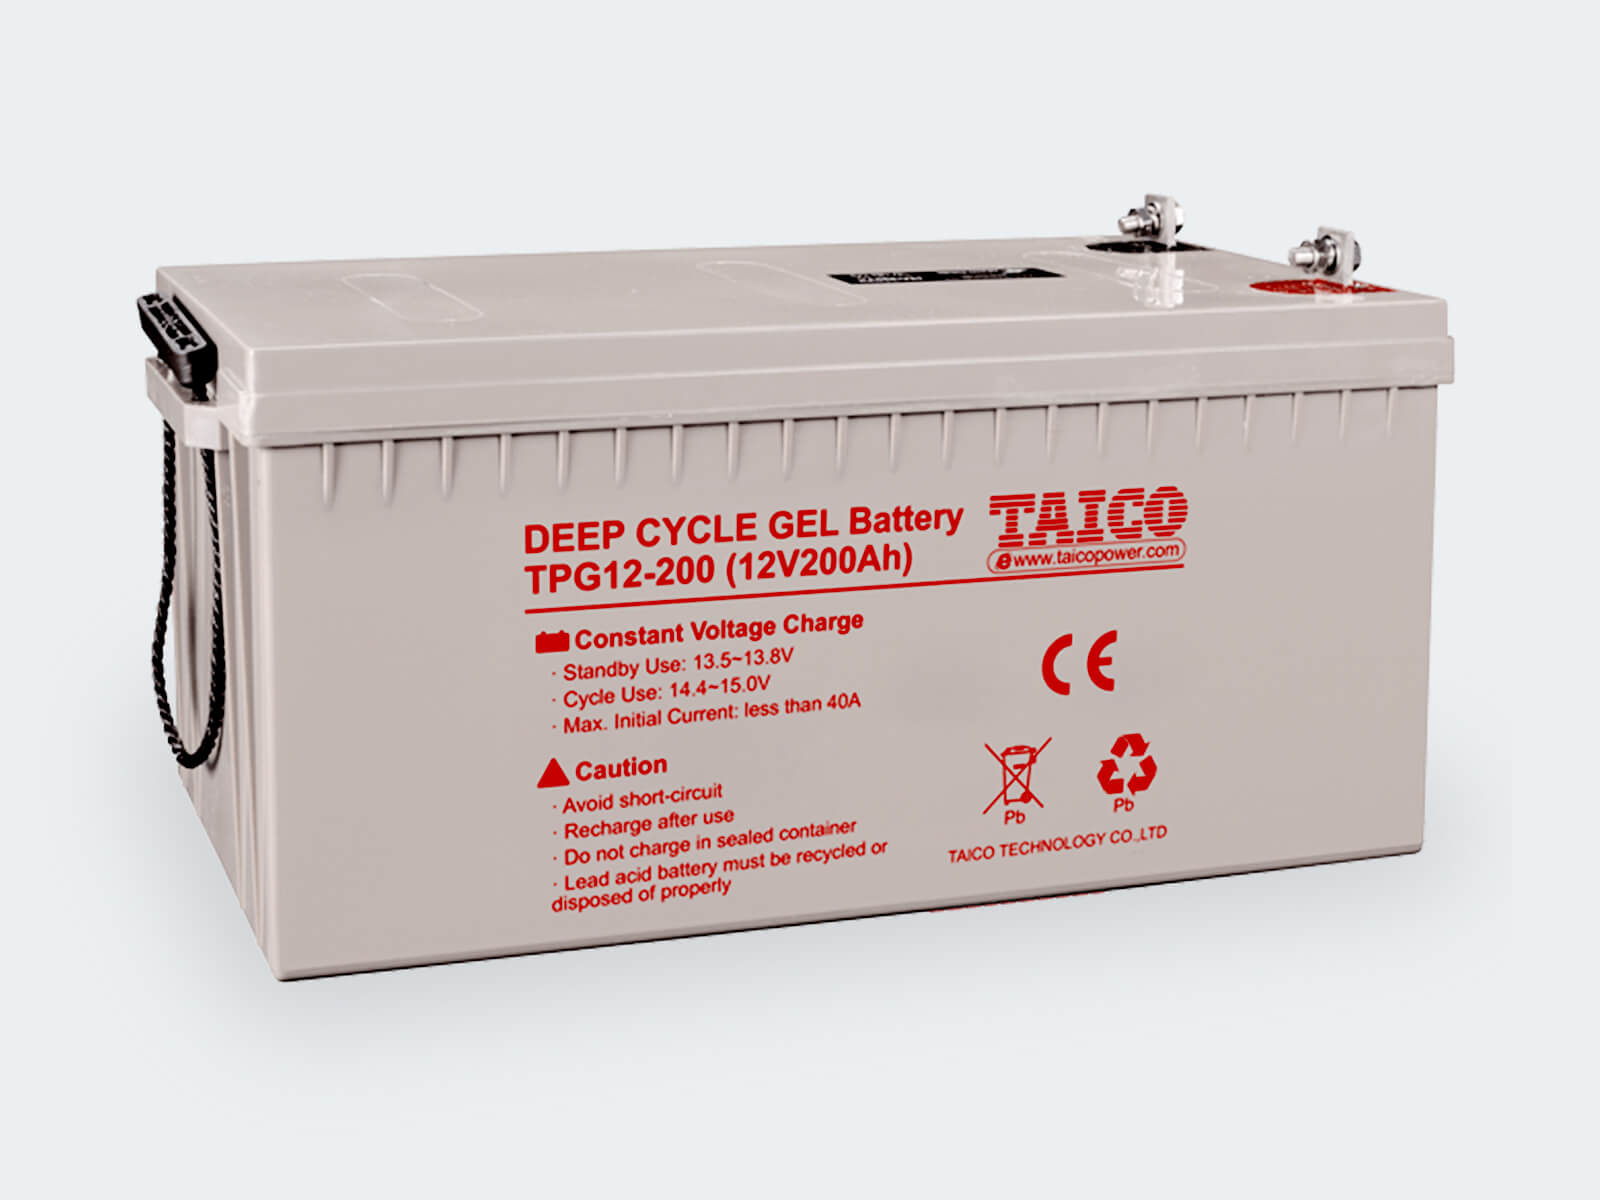 TAICO 12V Gel Lead Acid Battery